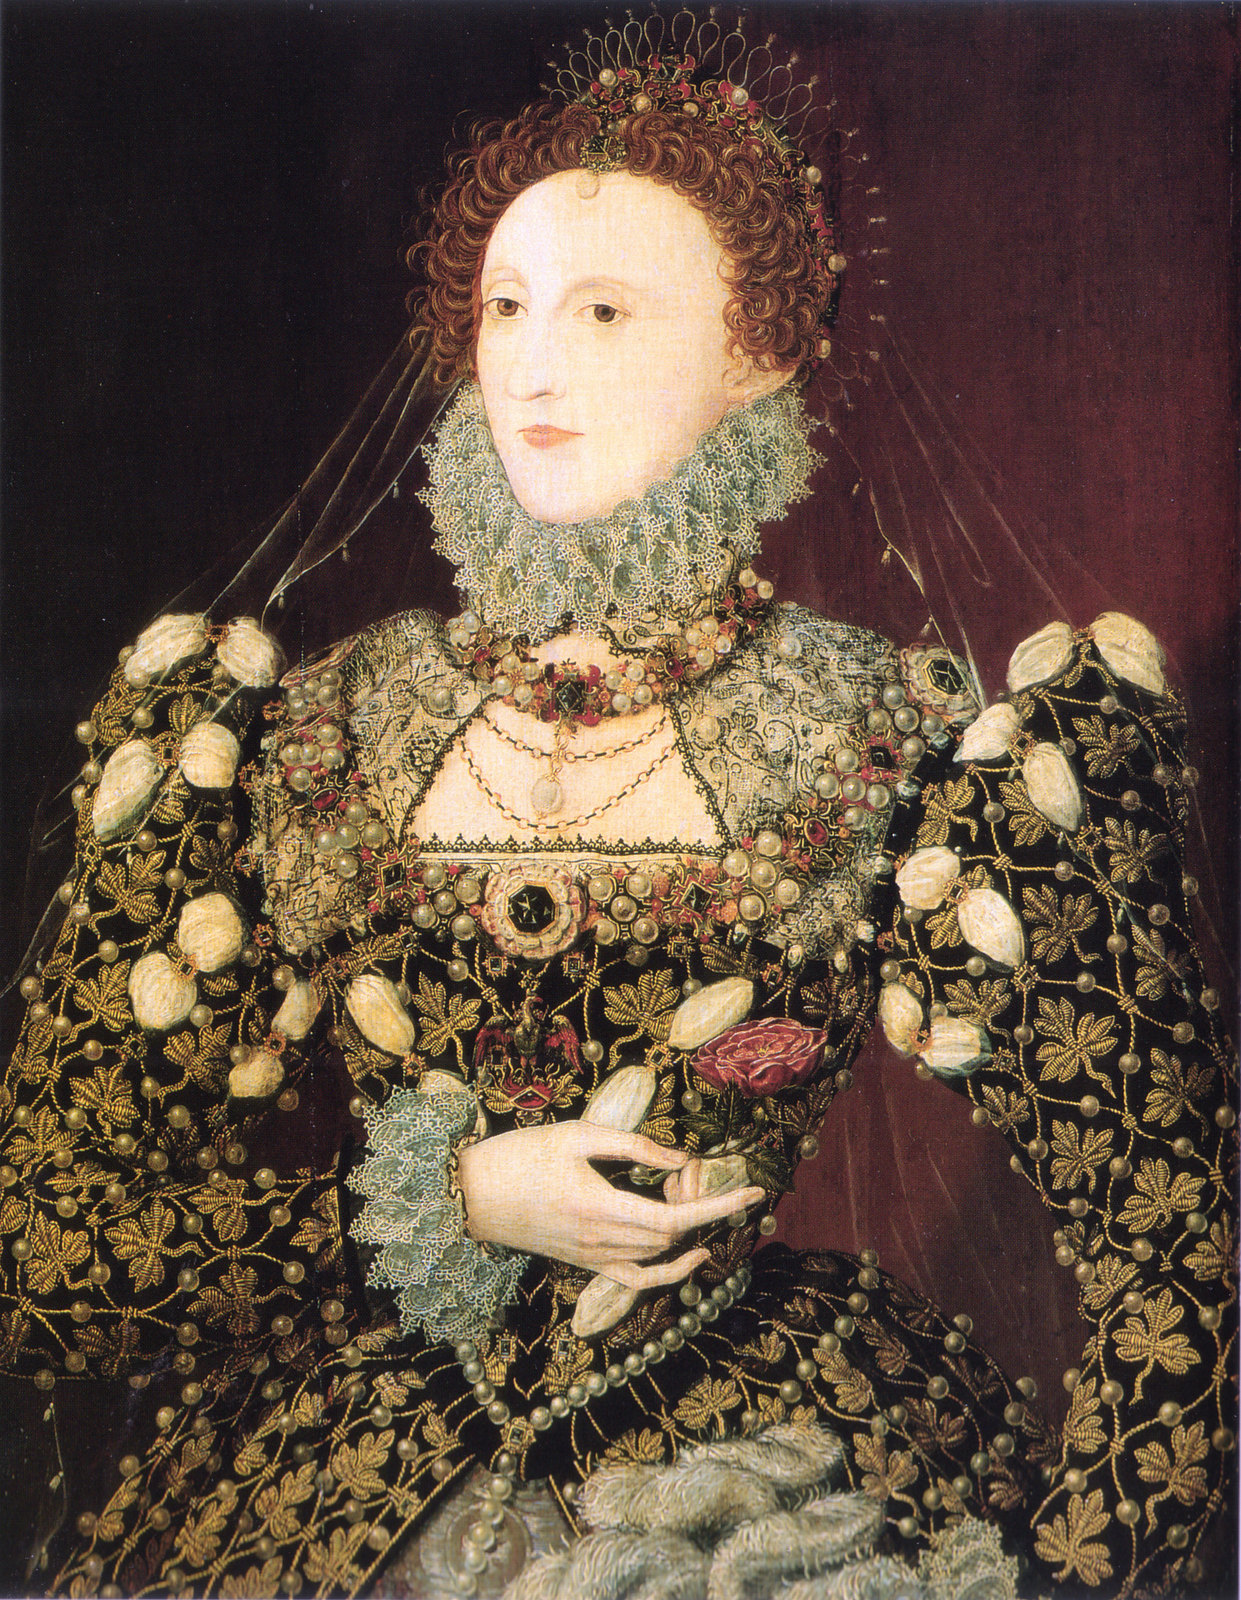 The 'Phoenix Portrait', attributed to Nicholas Hilliard, c. 1575